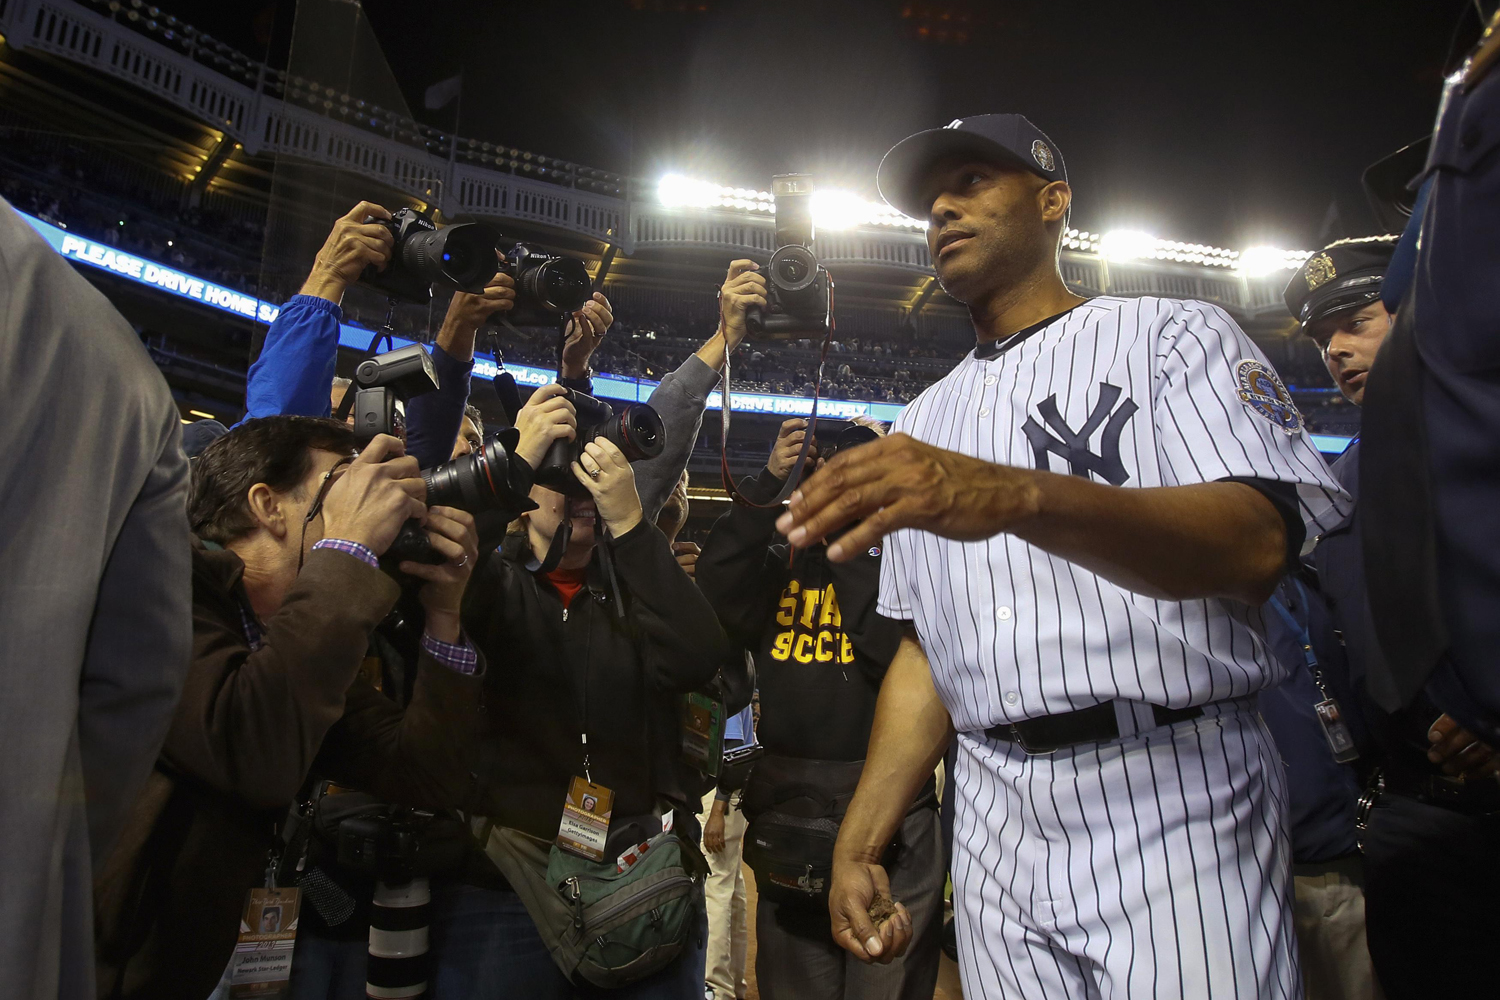 Sept. 26, 2013. New York Yankees relief pitcher Mariano Rivera clutches dirt from the mound as he leaves his home field for the final time after their loss to the Tampa Bay Rays during their MLB American League game at Yankee Stadium in New York. Rivera will retire after the end of the season.